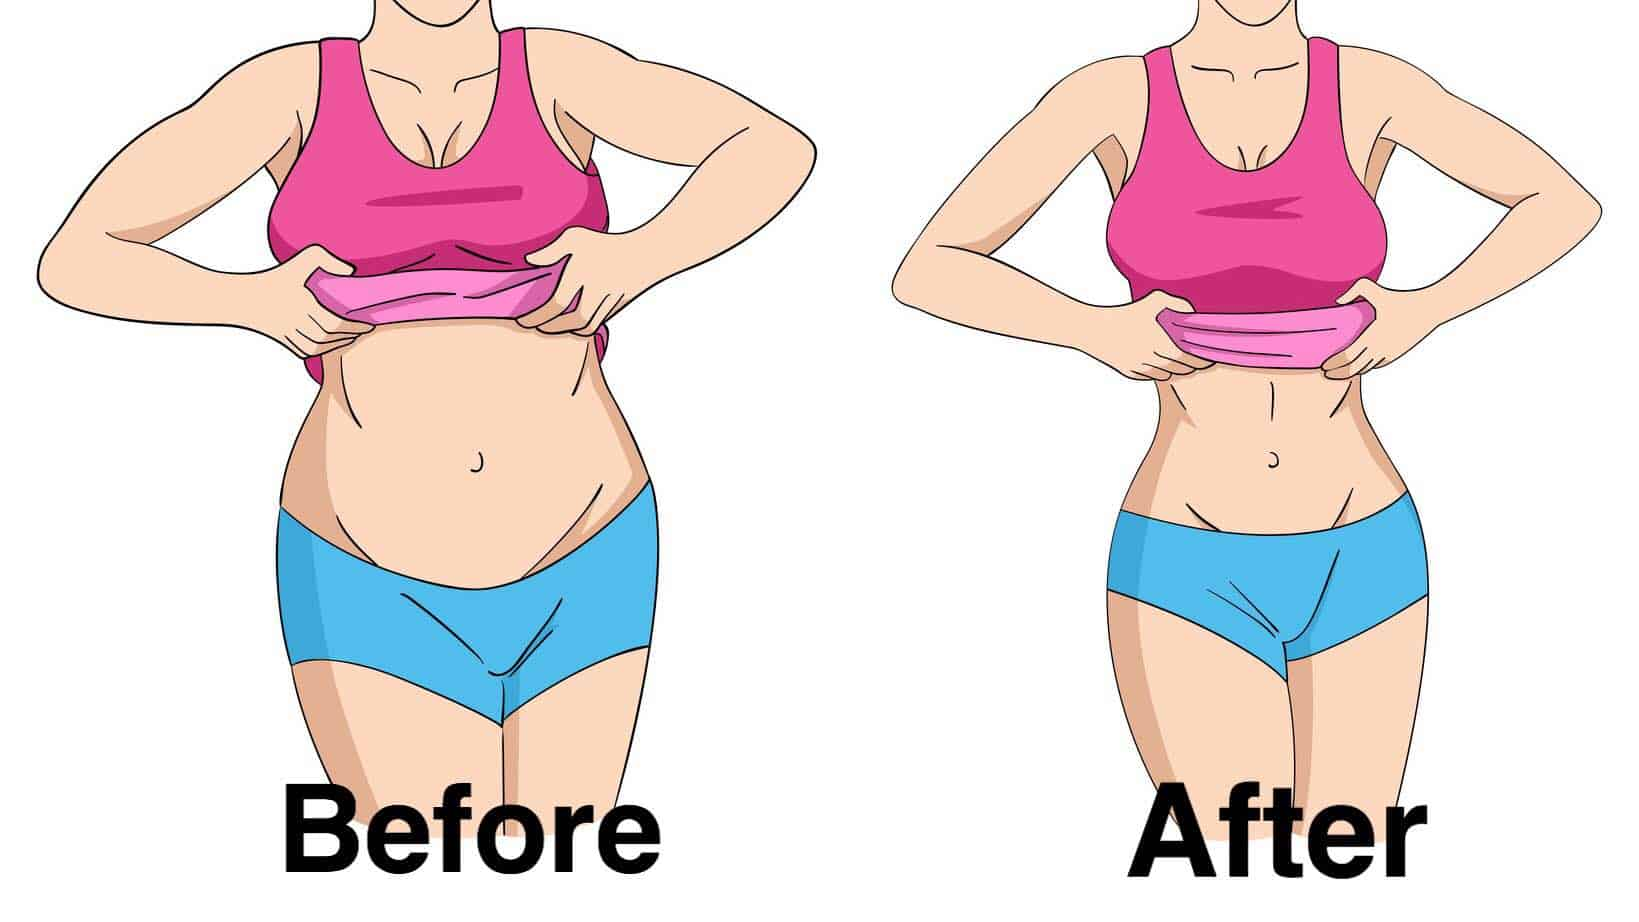 before after weight loss planking